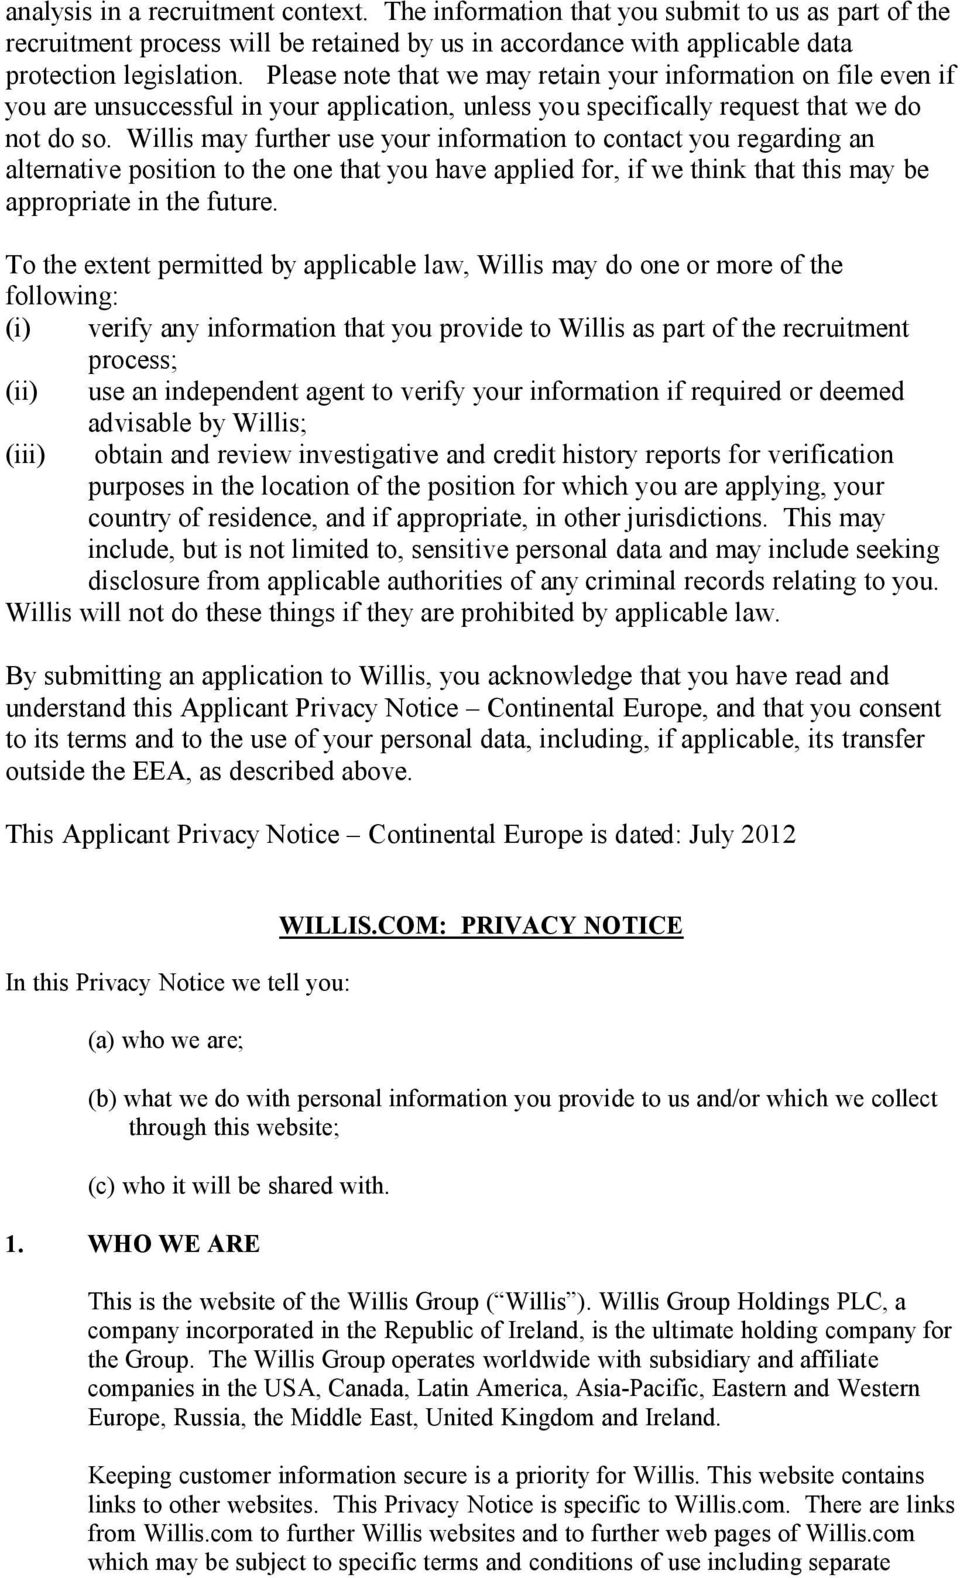 Willis may further use your information to contact you regarding an alternative position to the one that you have applied for, if we think that this may be appropriate in the future.